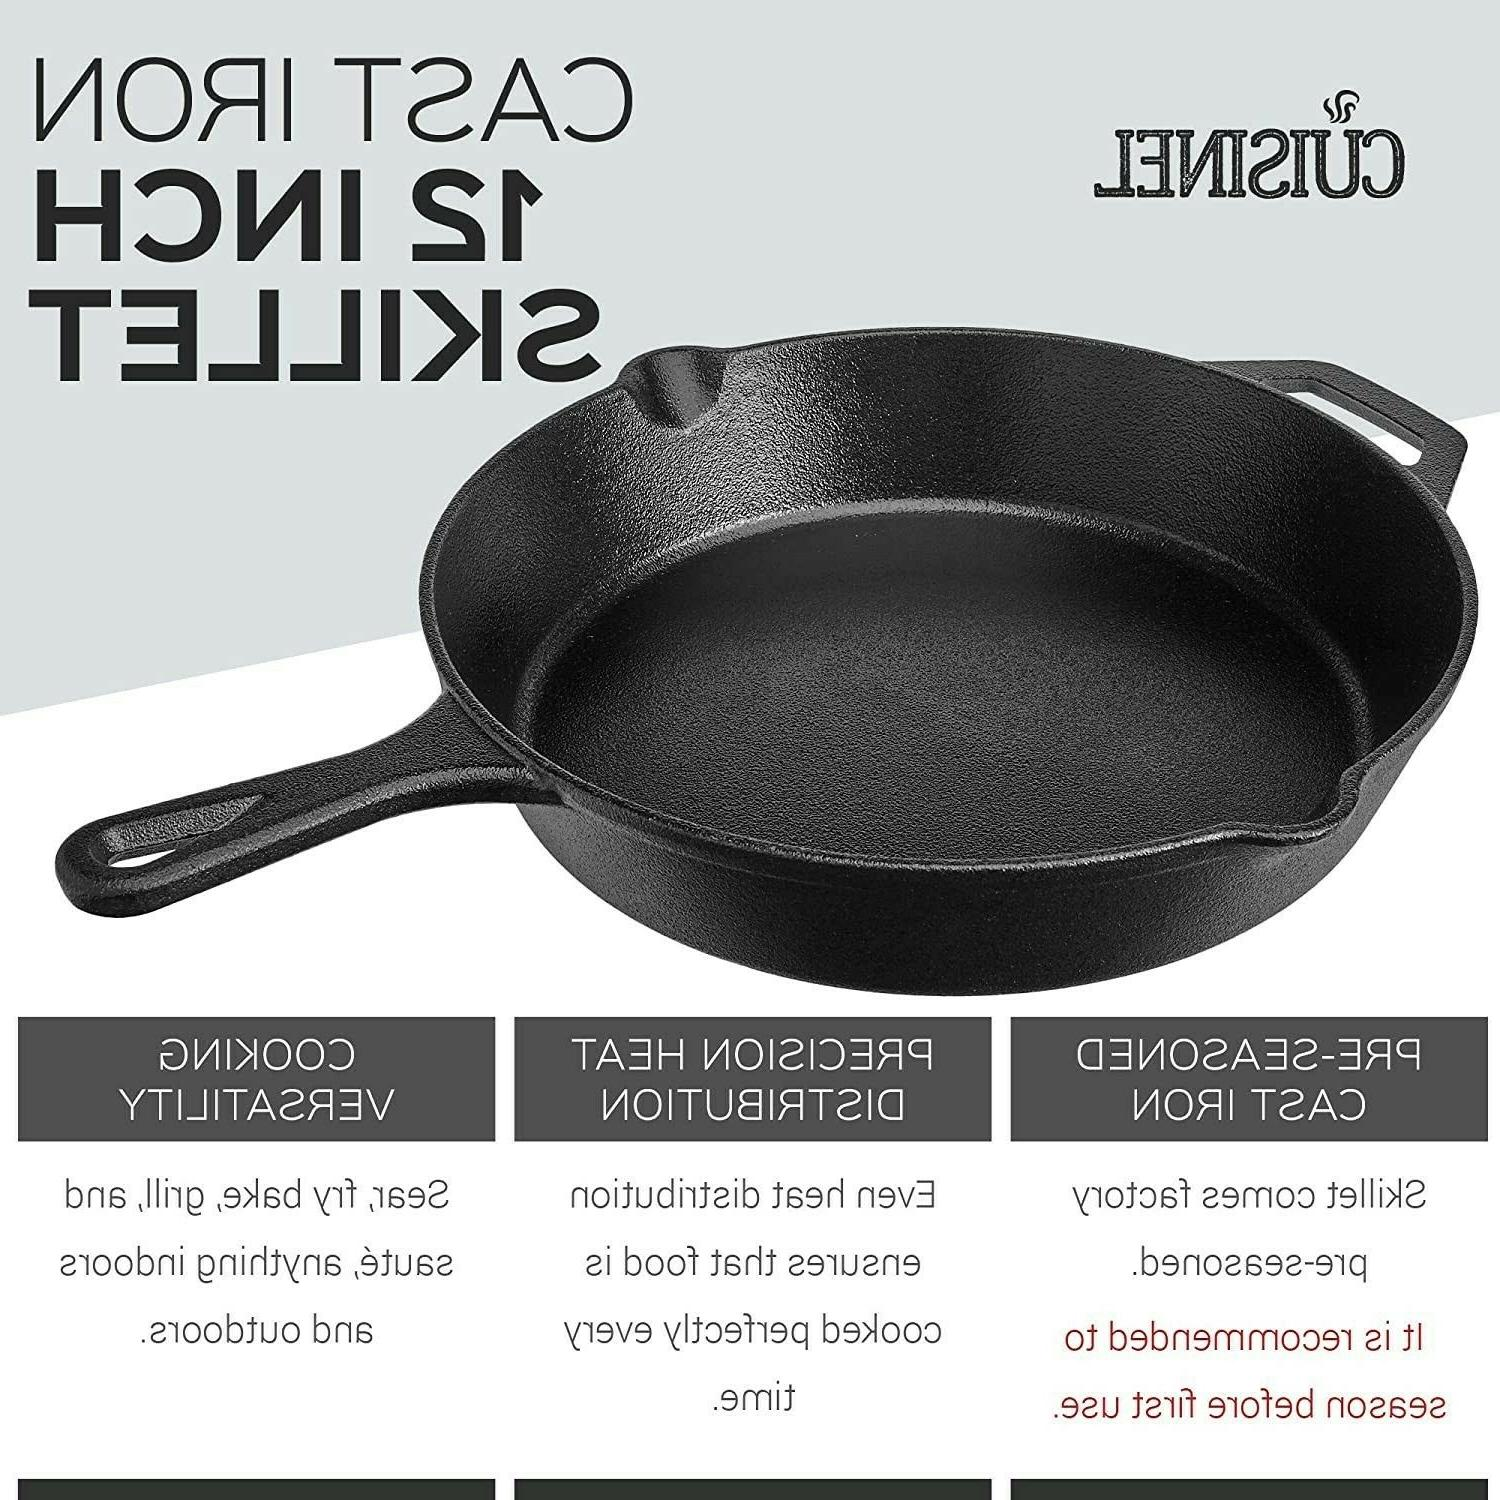 Cast Skillet Inch Frying Oven Cooking Seasoned Cookware